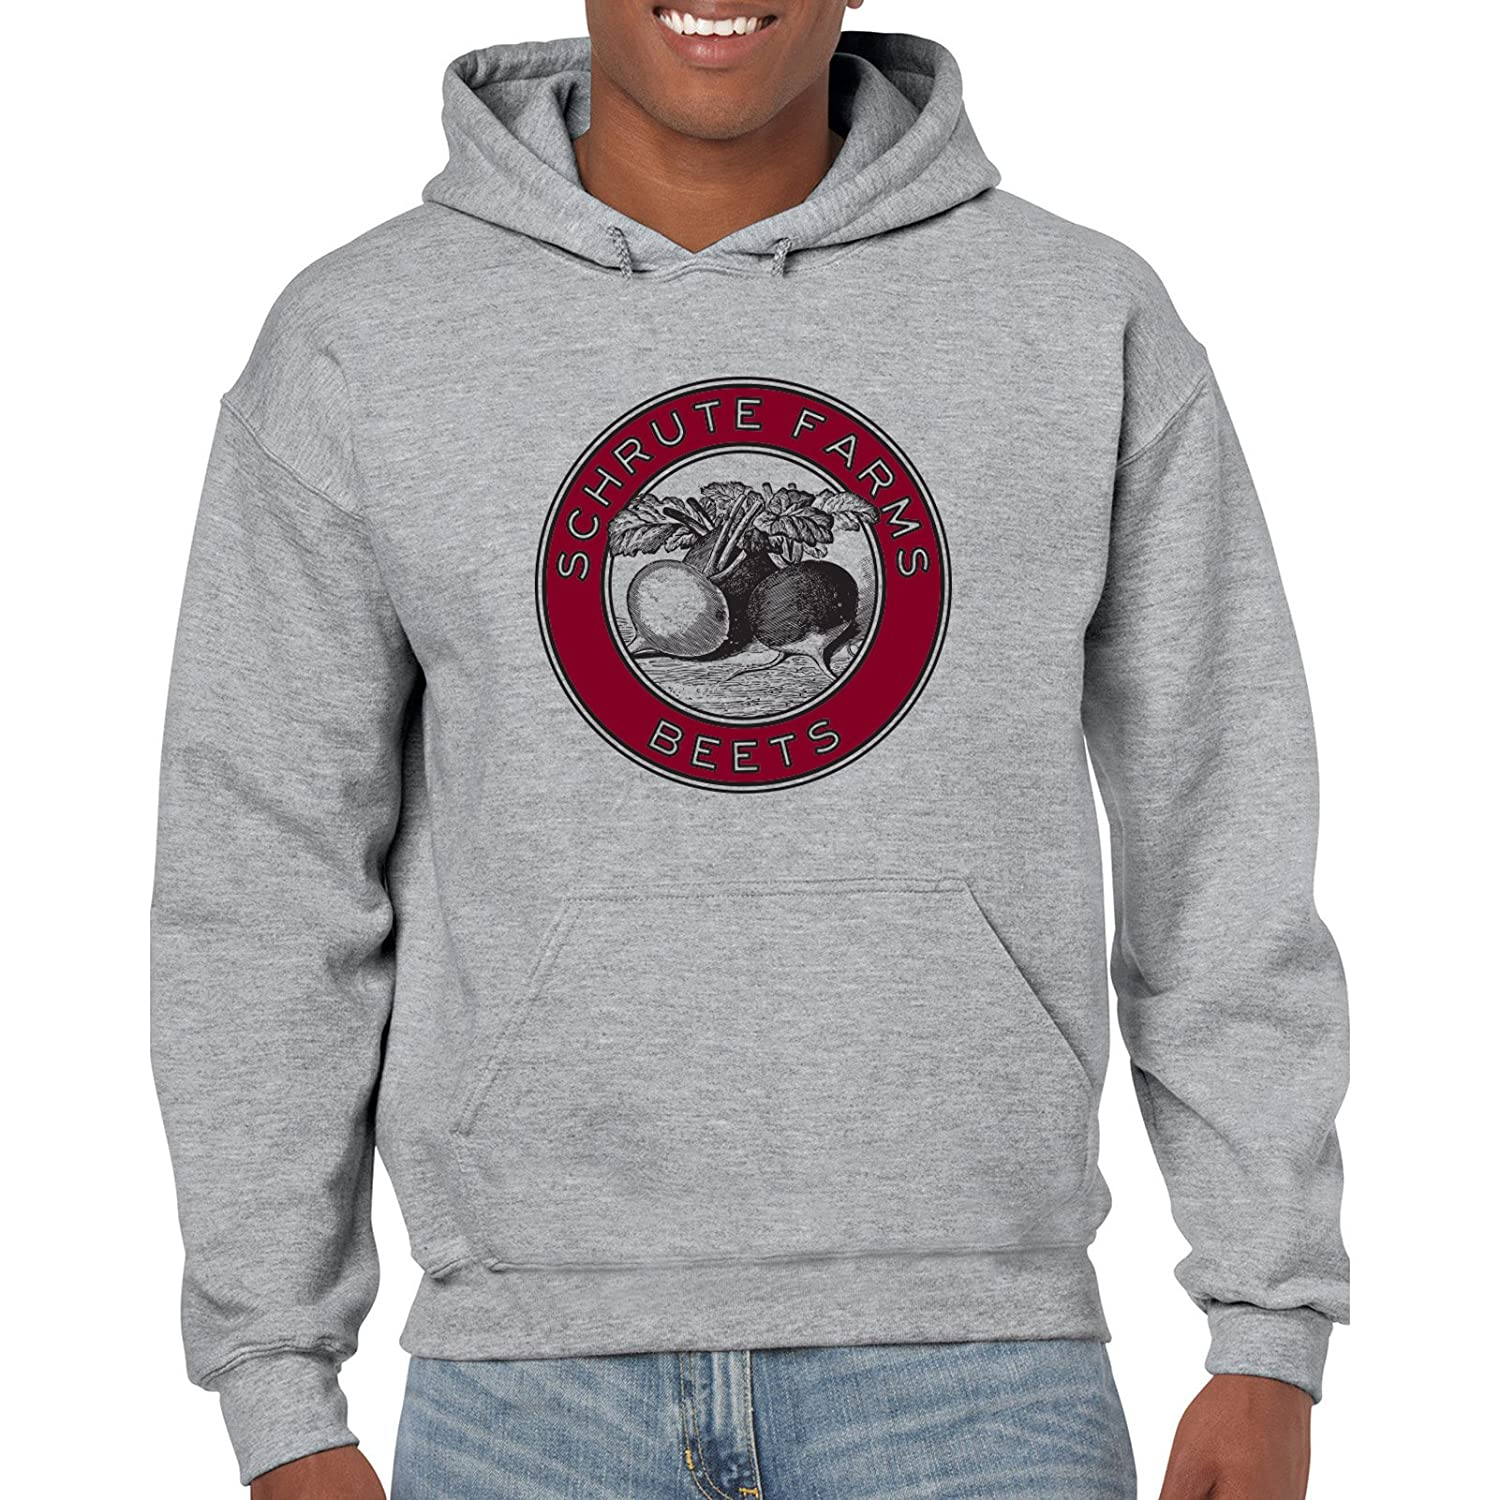 f1ce073f47e6 Amazon.com  UGP Campus Apparel Schrute Farms Beets - Funny TV Show Hoodie   Clothing